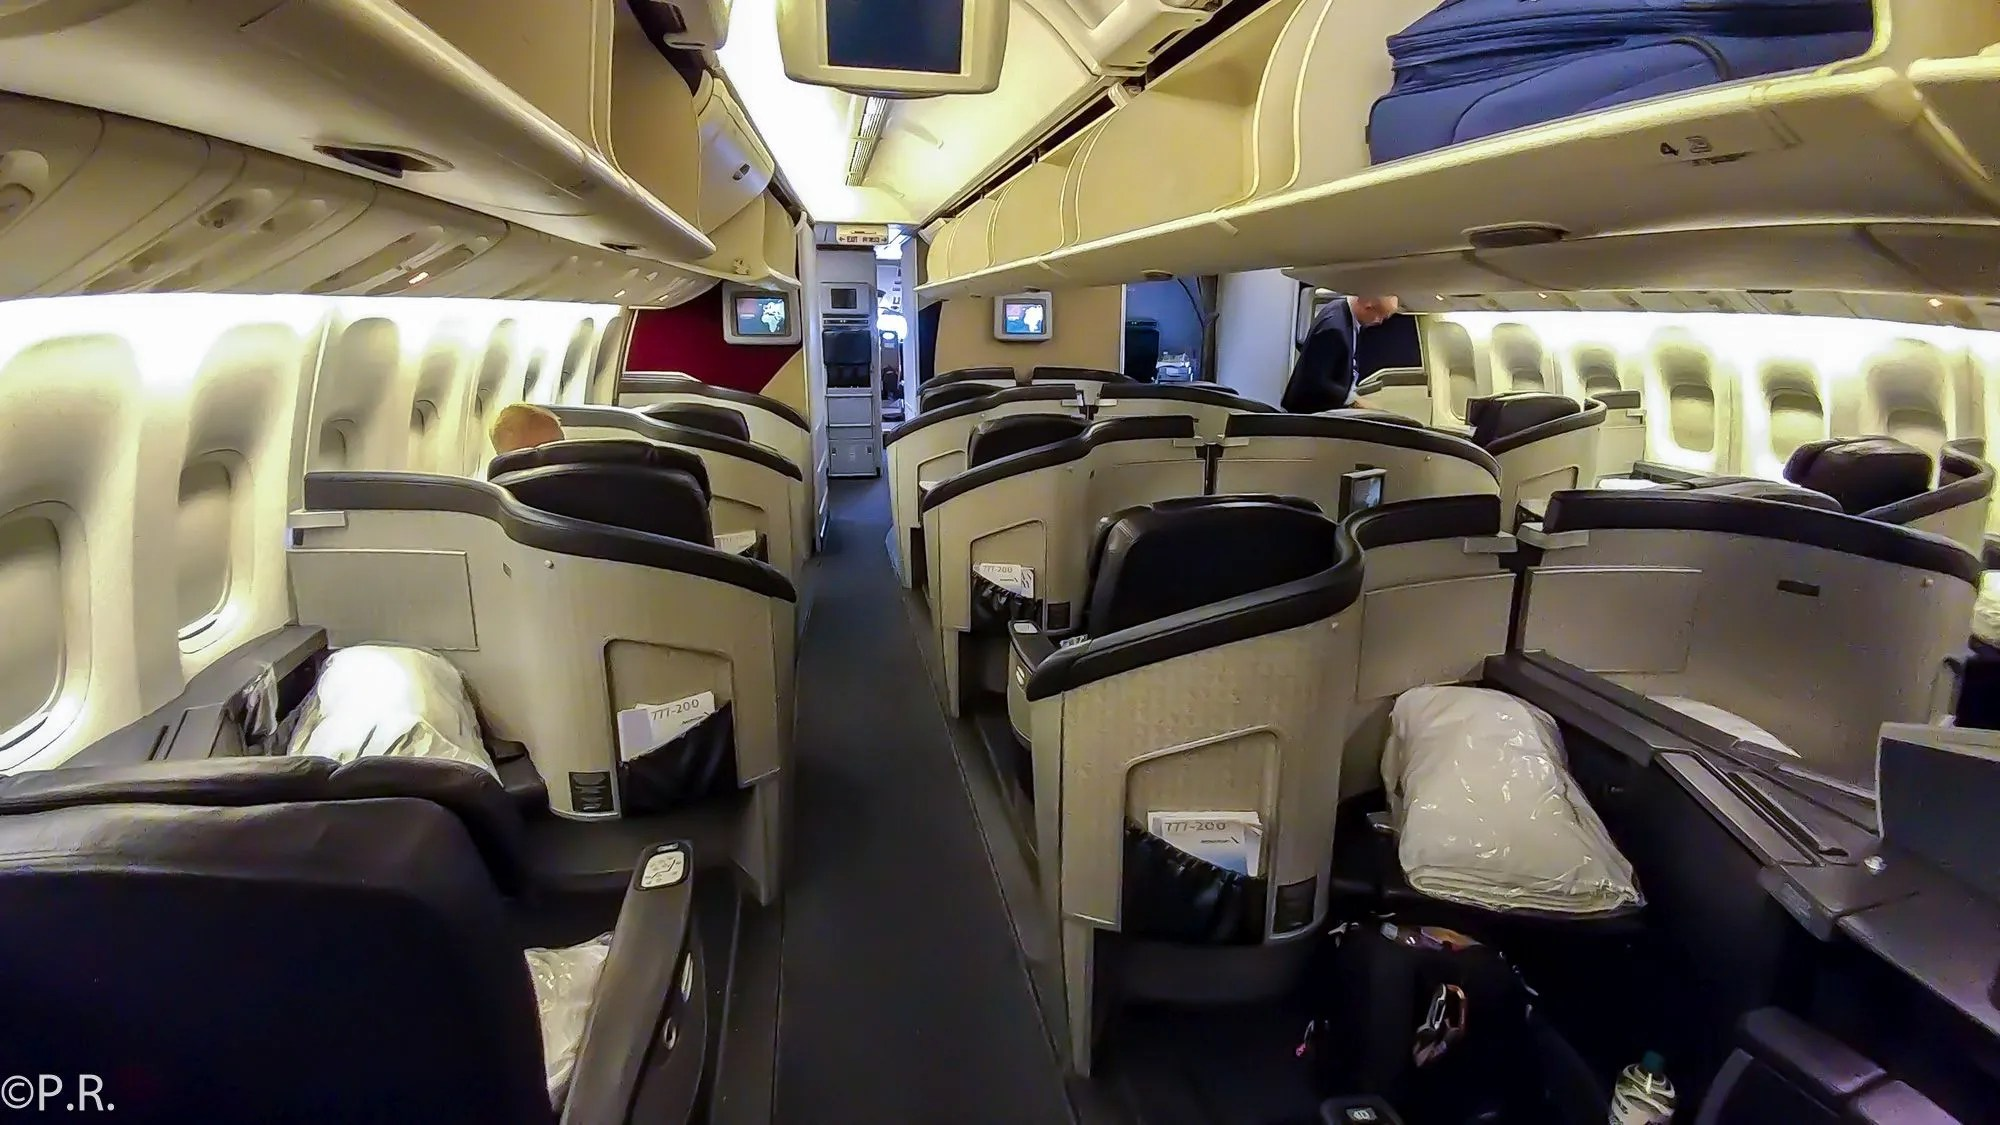 Flight Review: American Airlines First Class – Boeing 777 Dallas/Fort Worth (DFW) to Frankfurt (FRA)